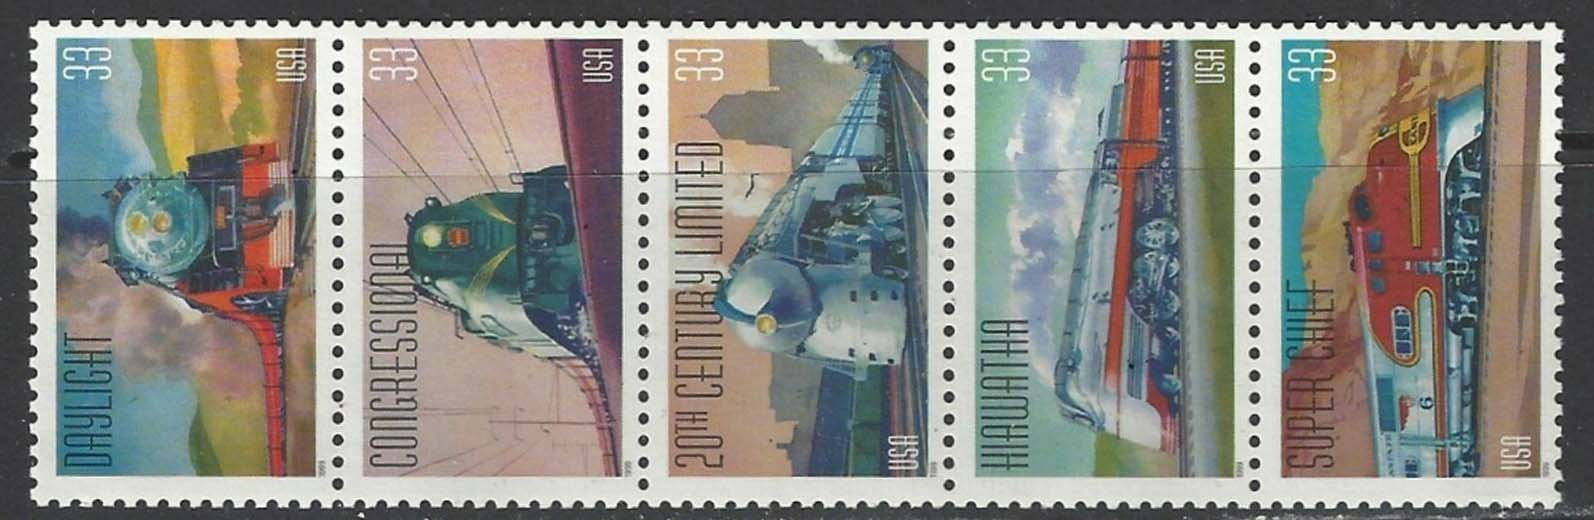 "Scott 3333-3337 Strip of 5 (33 cents) <p> <a href=""/images/USA-Scott-3333-3337-(5).jpg""><font color=green><b>View the image</a></b></font>"